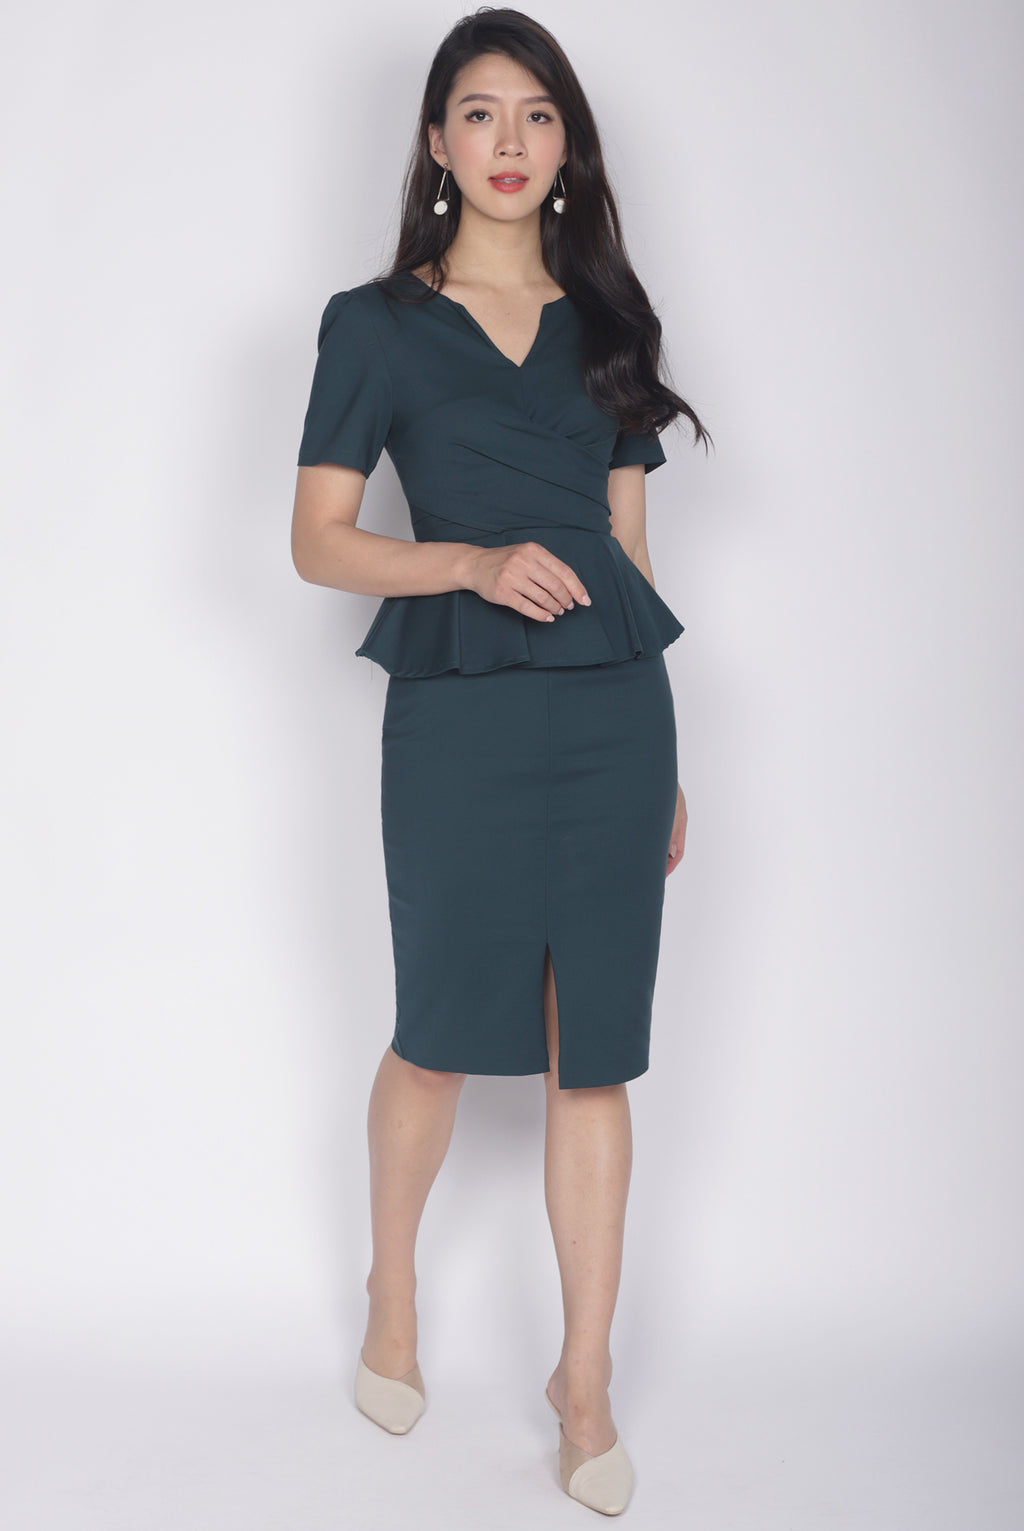 Helyn Sleeved Peplum Dress In Forest Green